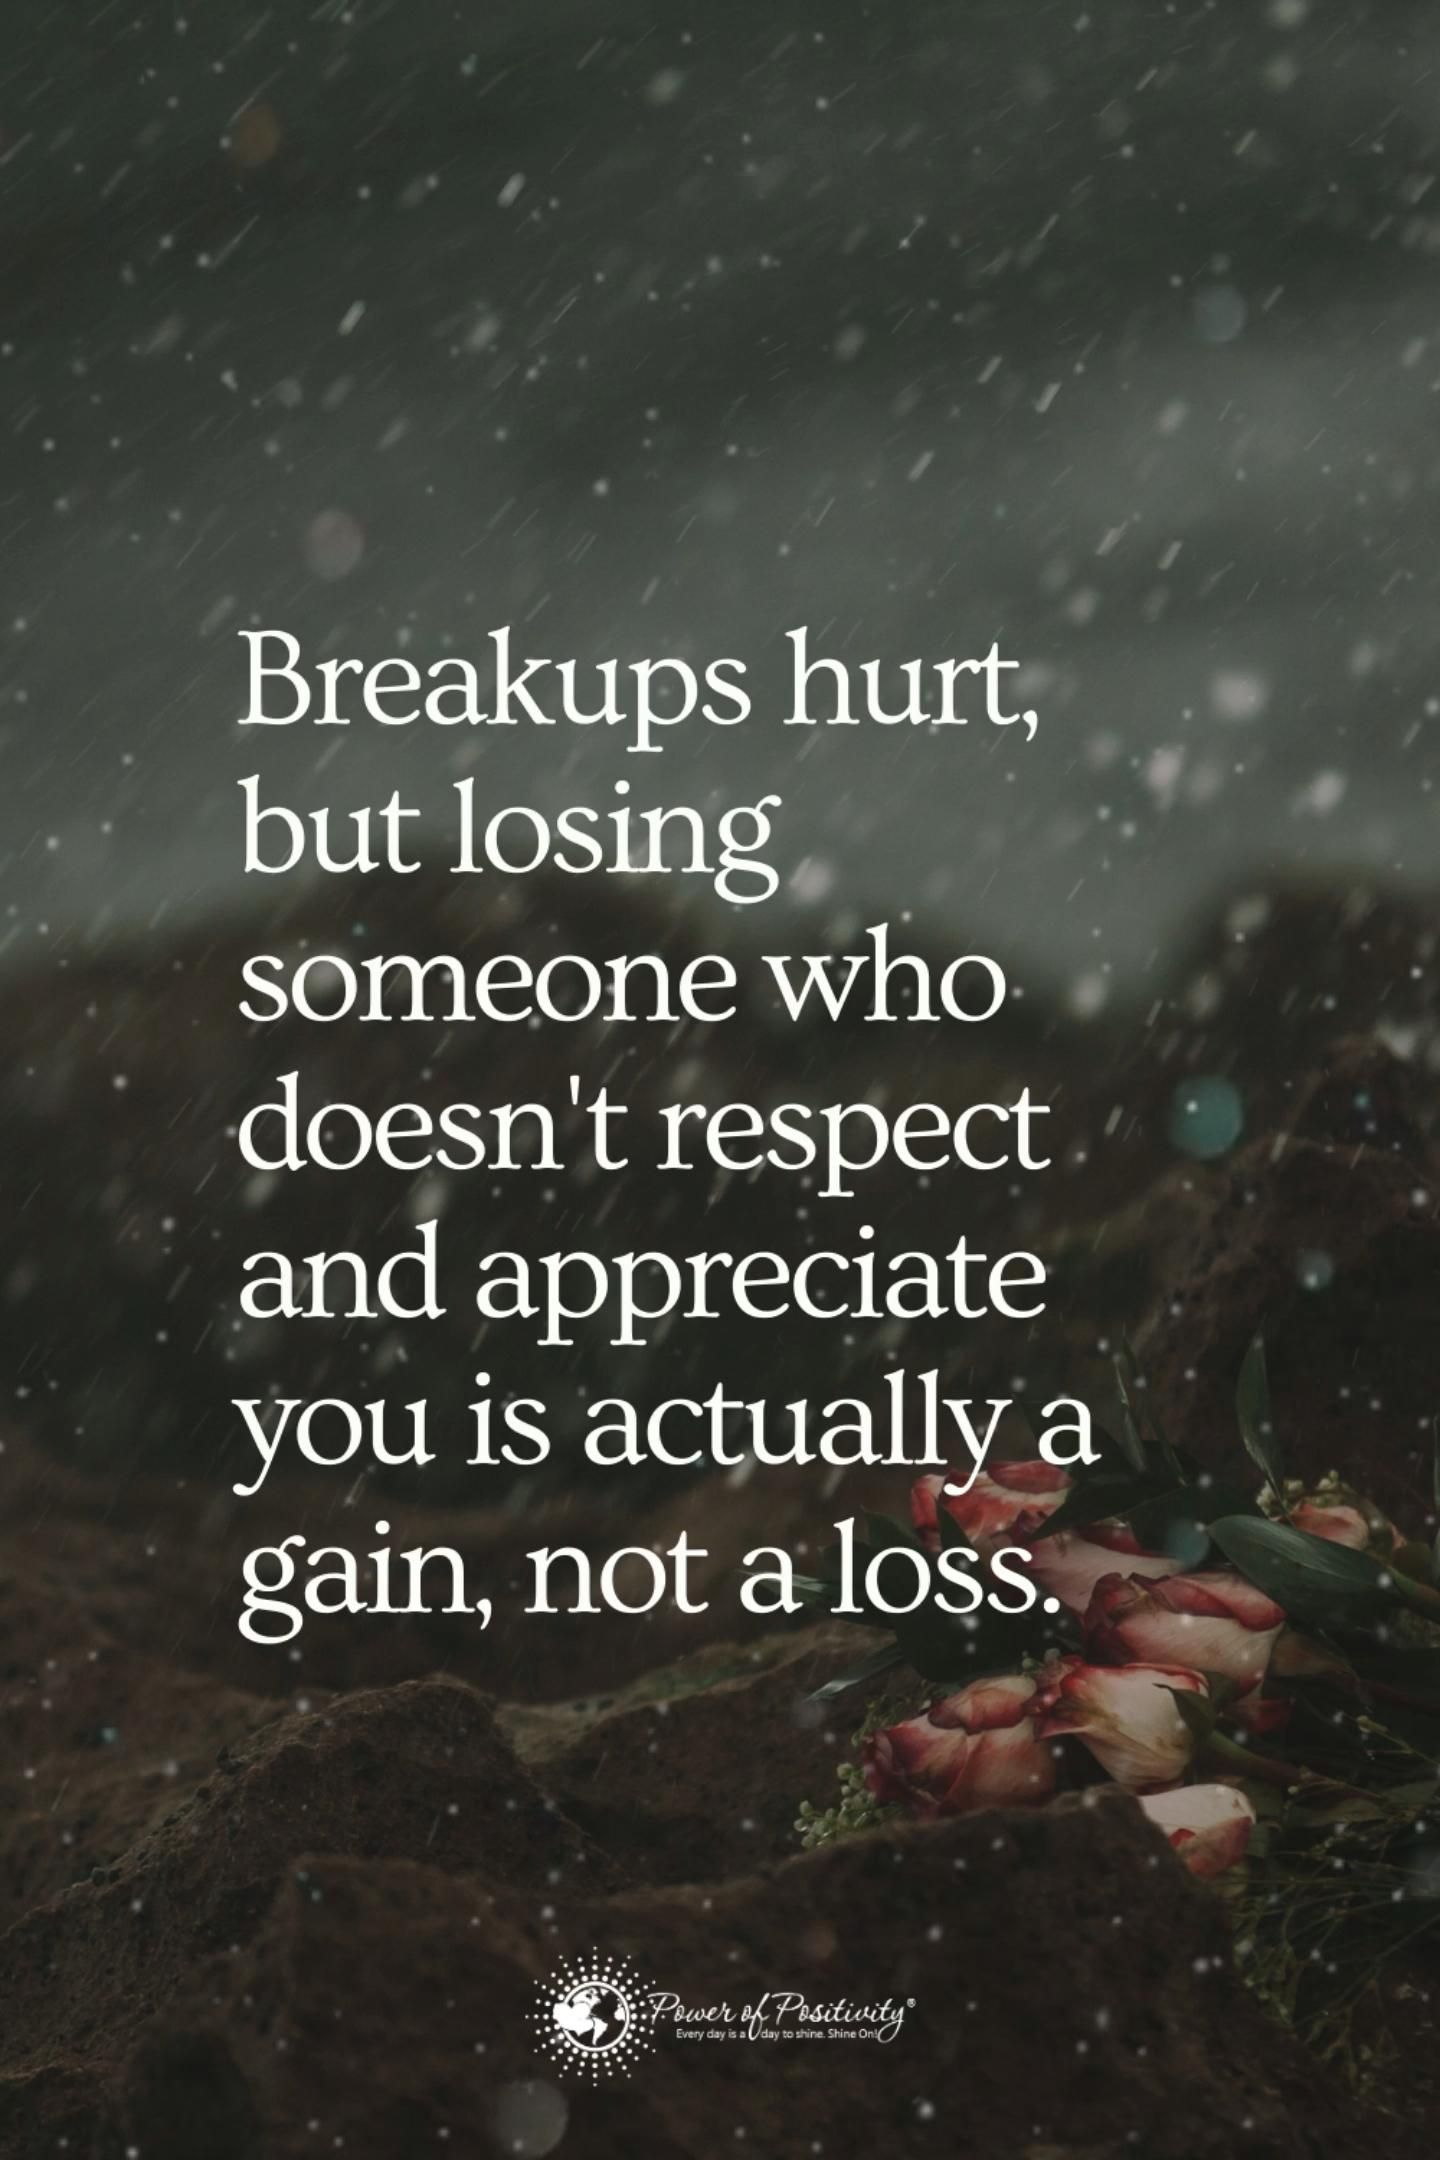 15 Quotes on Breakups to Ease a Broken Heart | 5 Minute Read